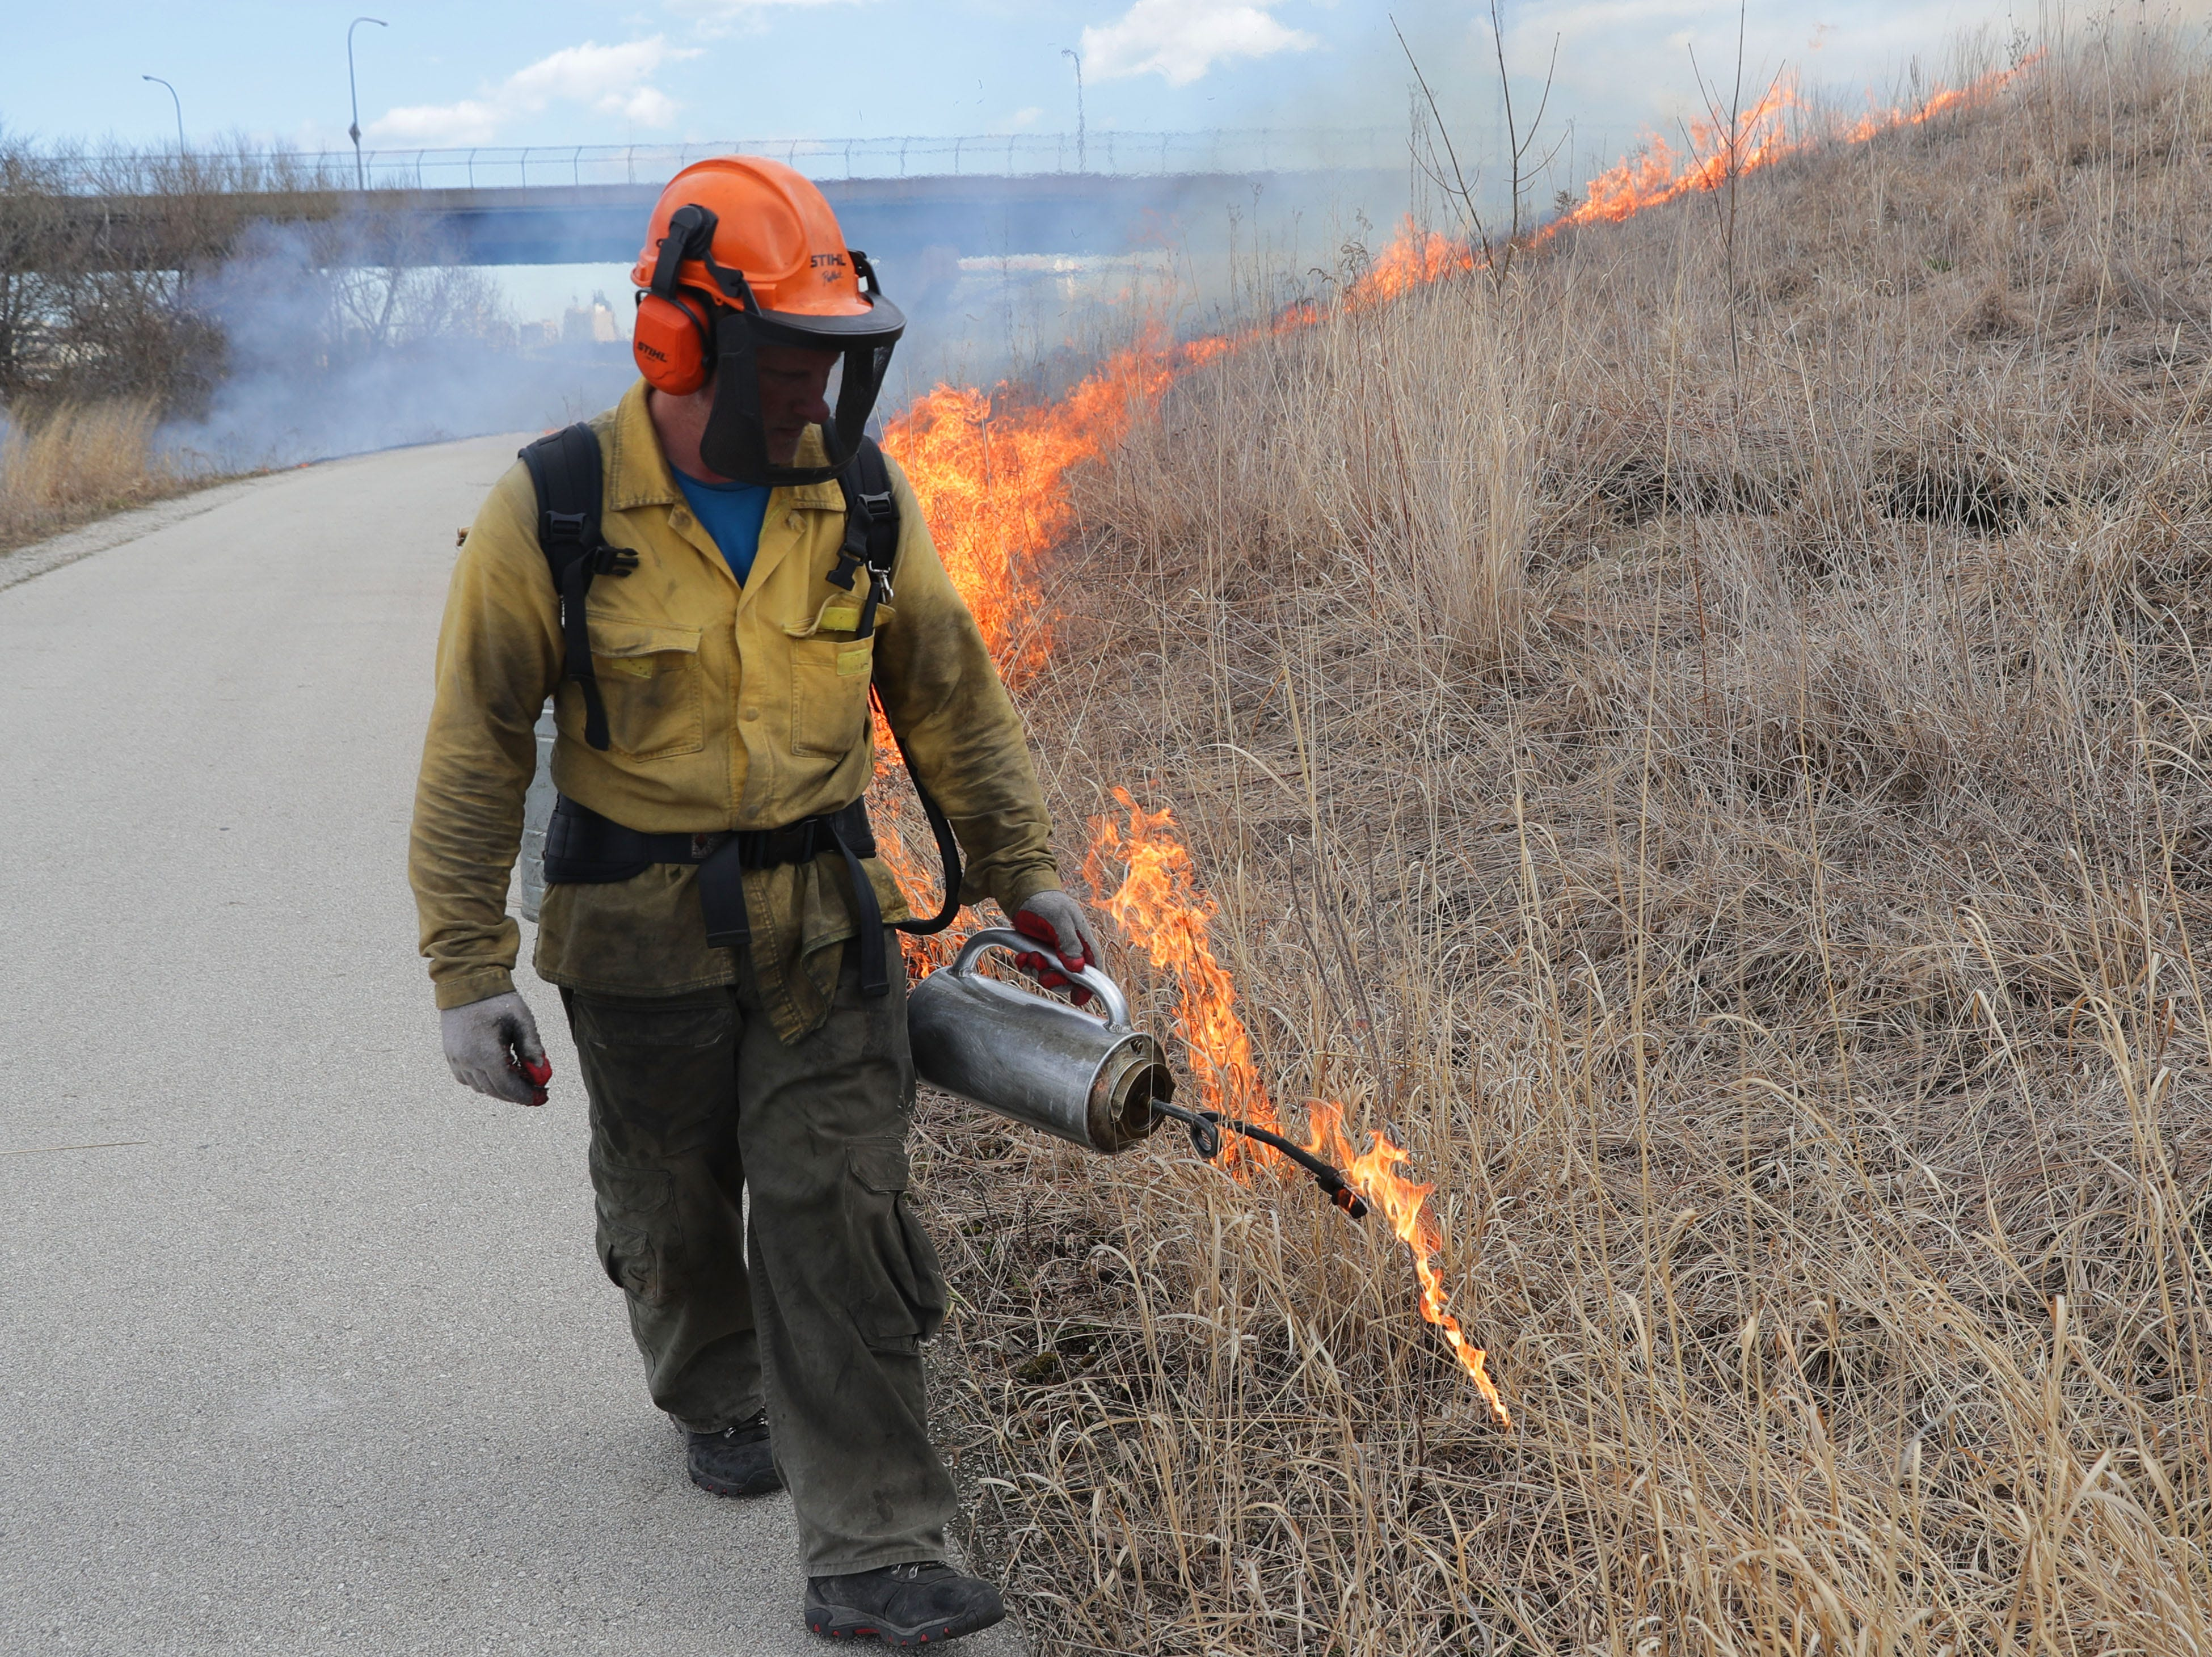 Chris Mann of Kettle Moraine Land Stewards LLC, uses a drip torch to conduct a controlled burn Tuesday at Three Bridges Park along the Hank Aaron Trail in the Menomonee Valley. The controlled burn, conducted by the Urban Ecology Center and Kettle Moraine Land Stewards, aids in the management of the land, allowing for healthy growth.